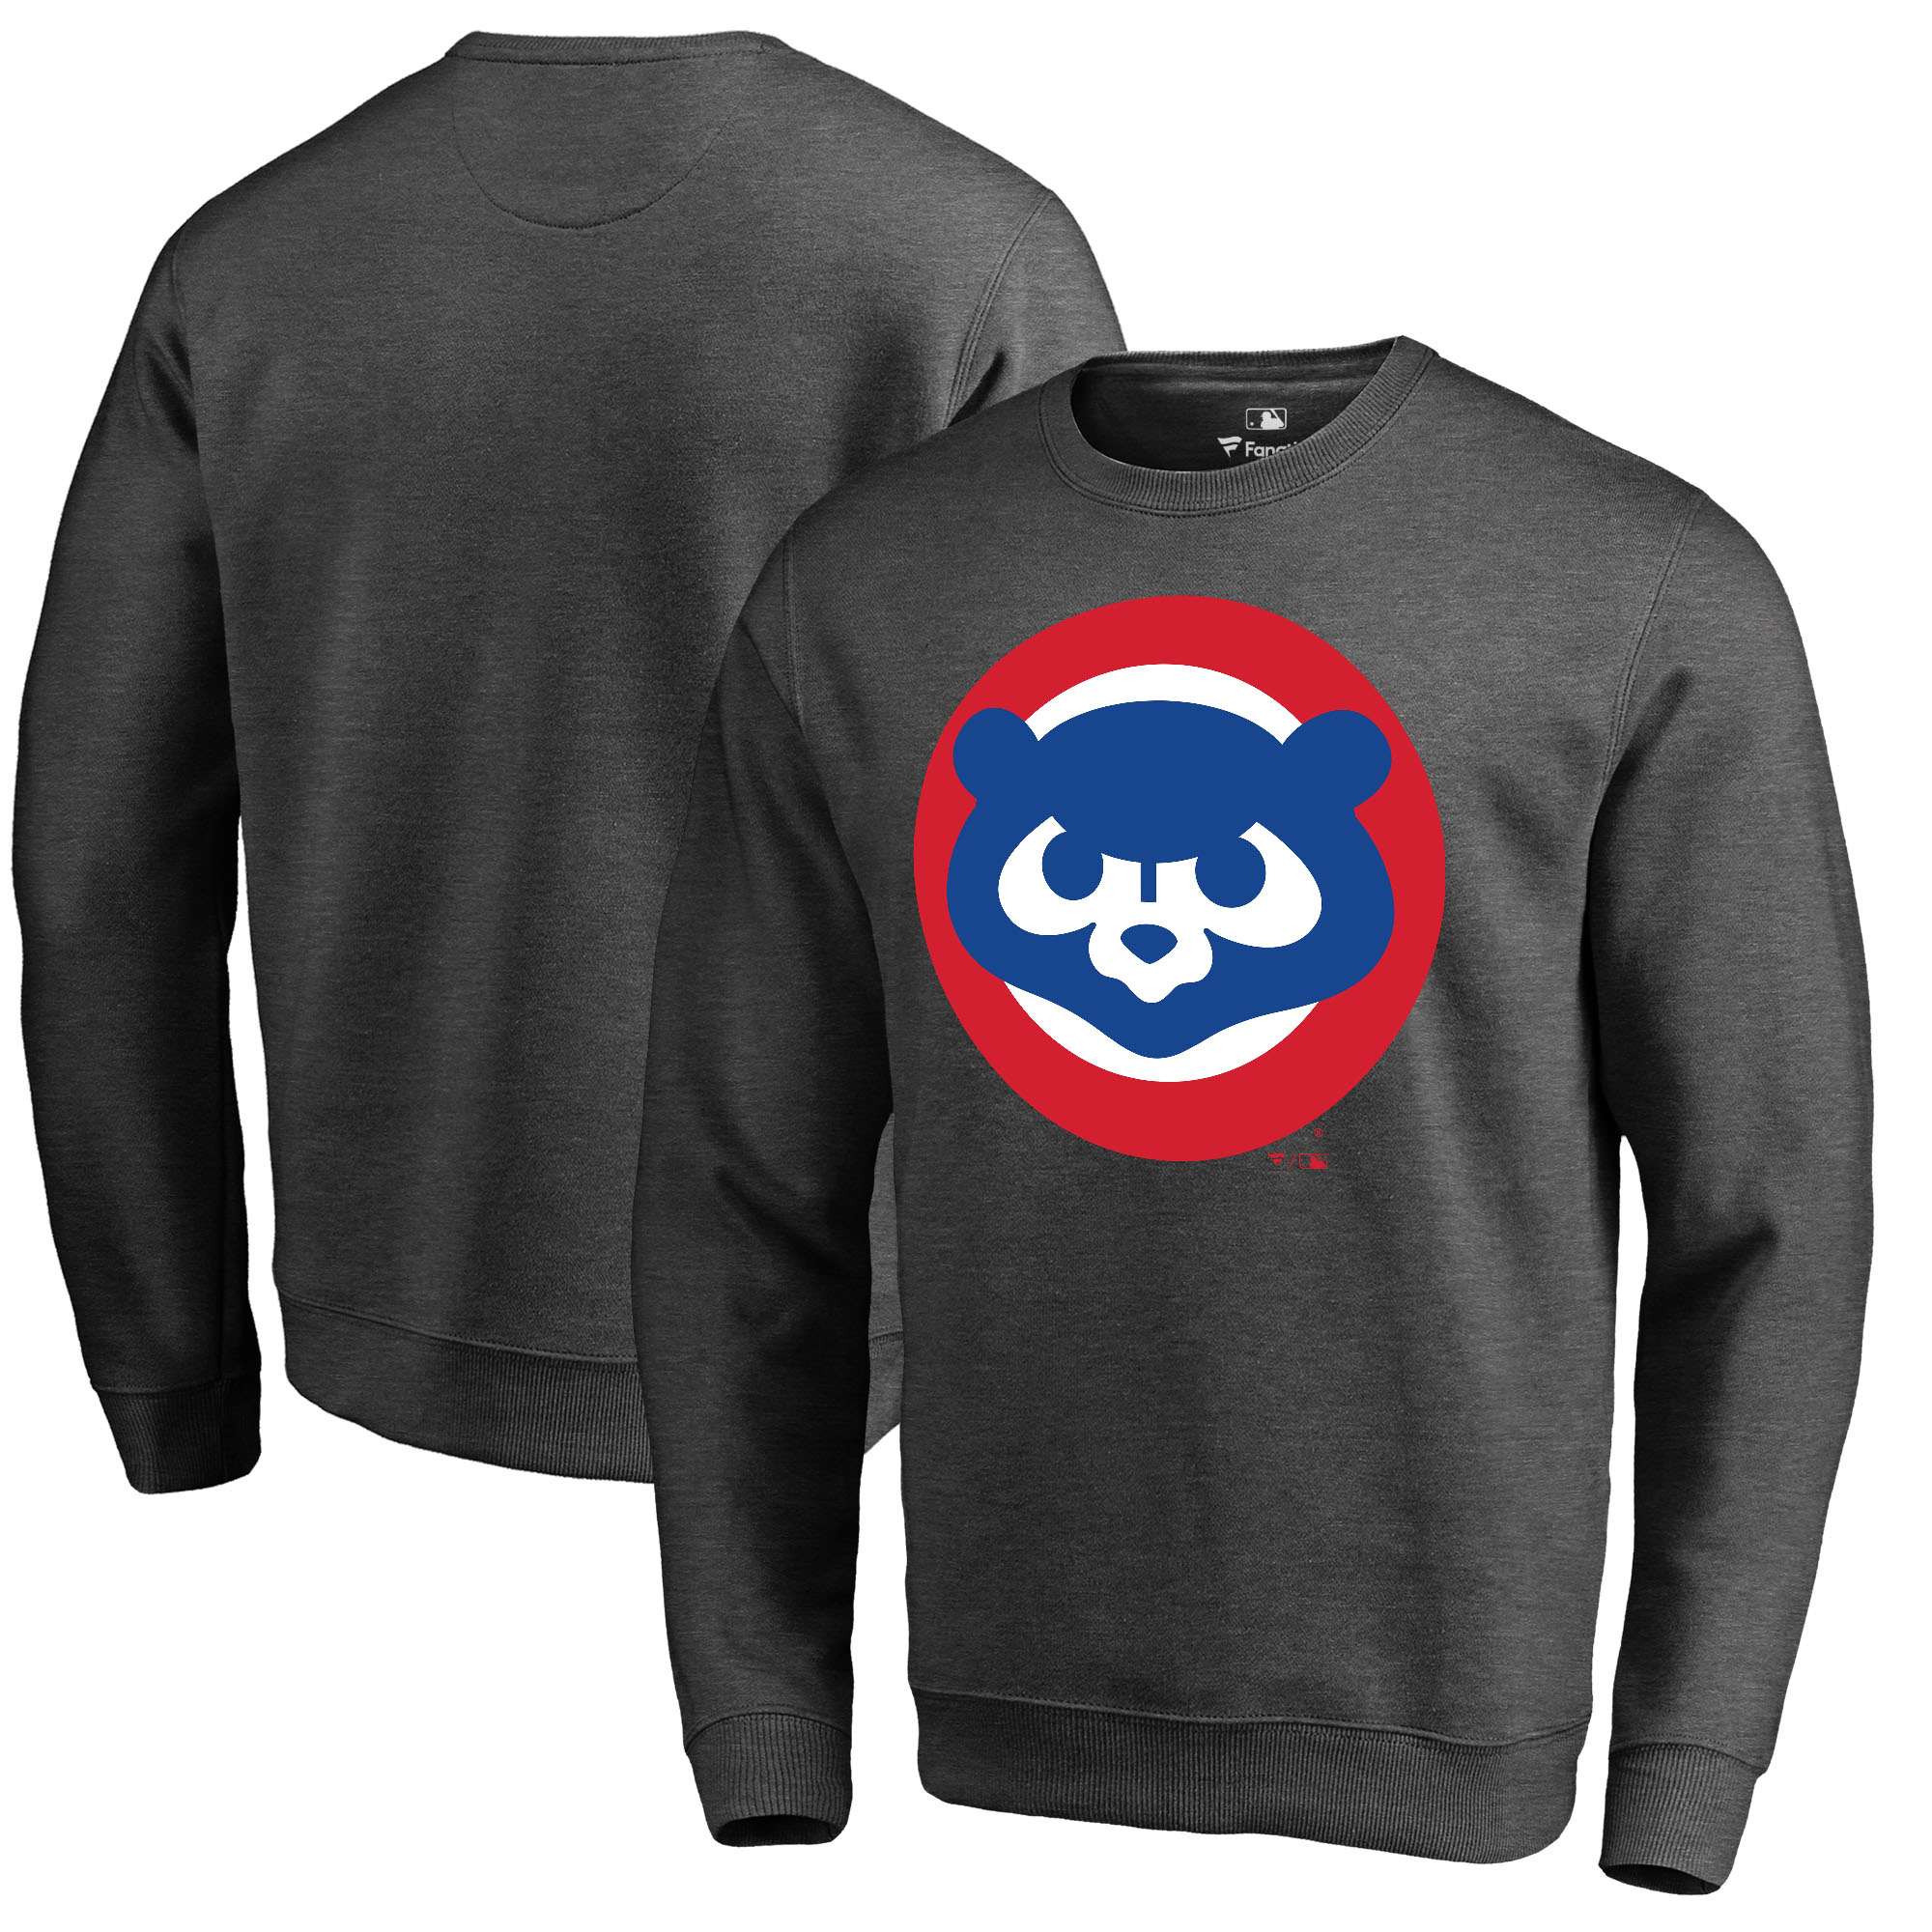 Chicago Cubs Fanatics Branded Cooperstown Collection Huntington Sweatshirt - Heathered Gray